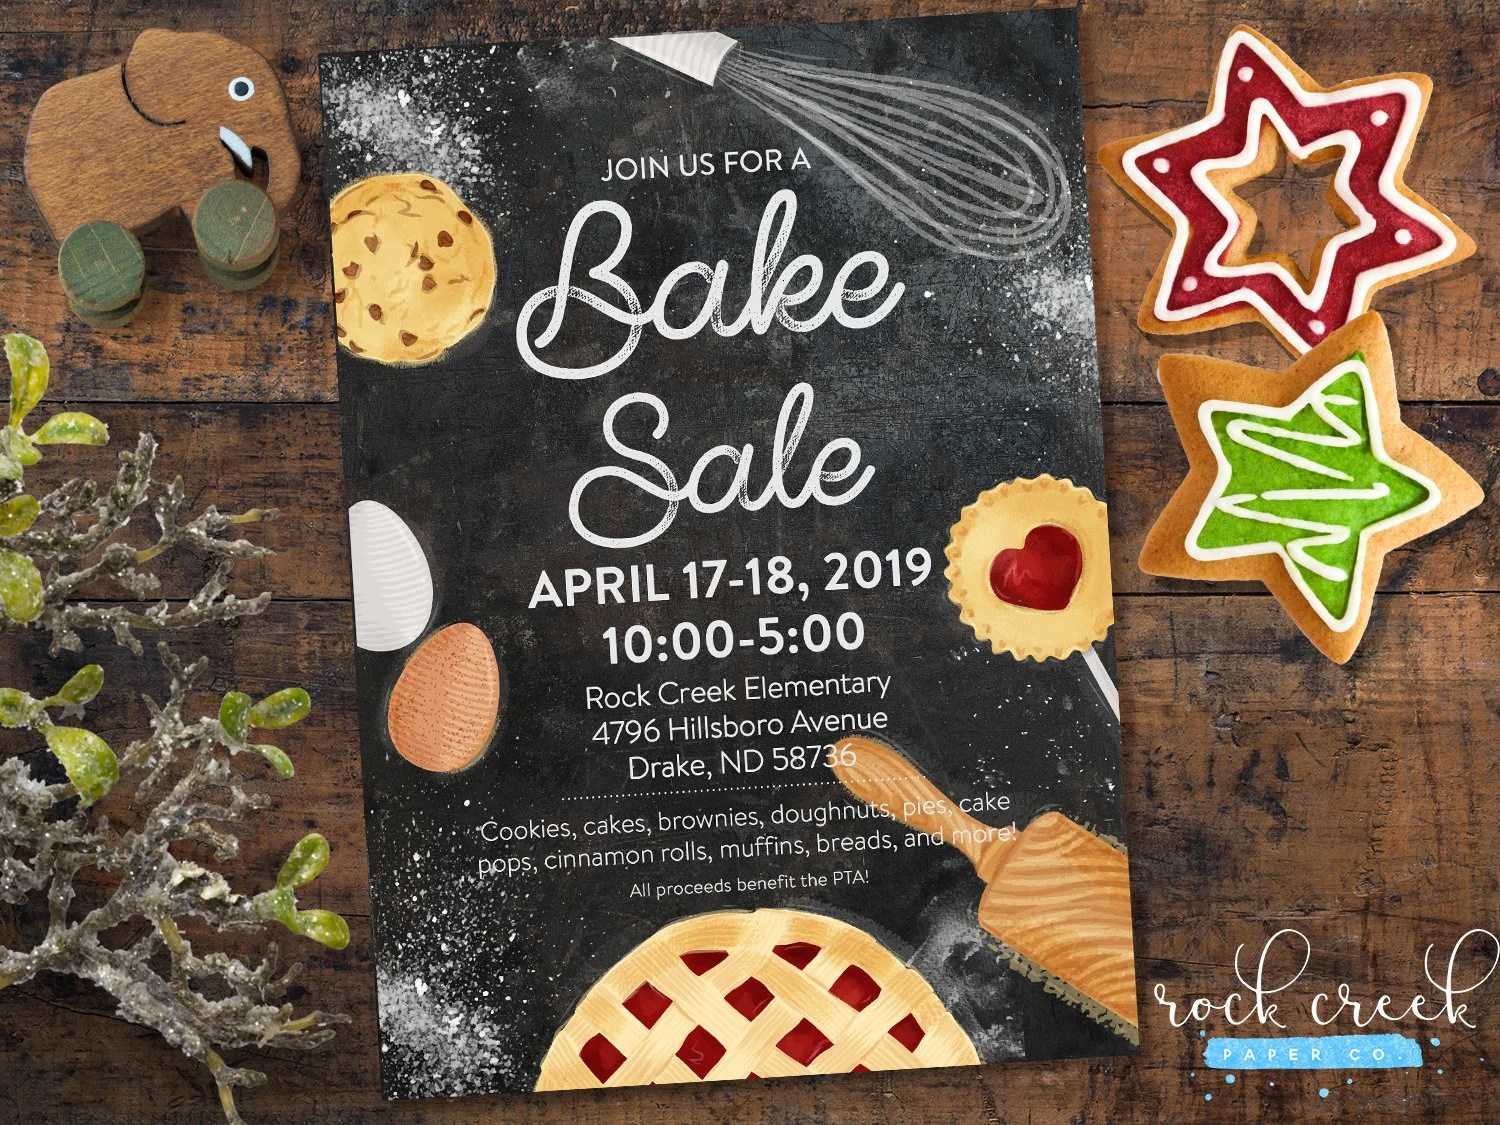 Bake Sale Flyer Bake Sale Invitation School Fundraiser Etsy